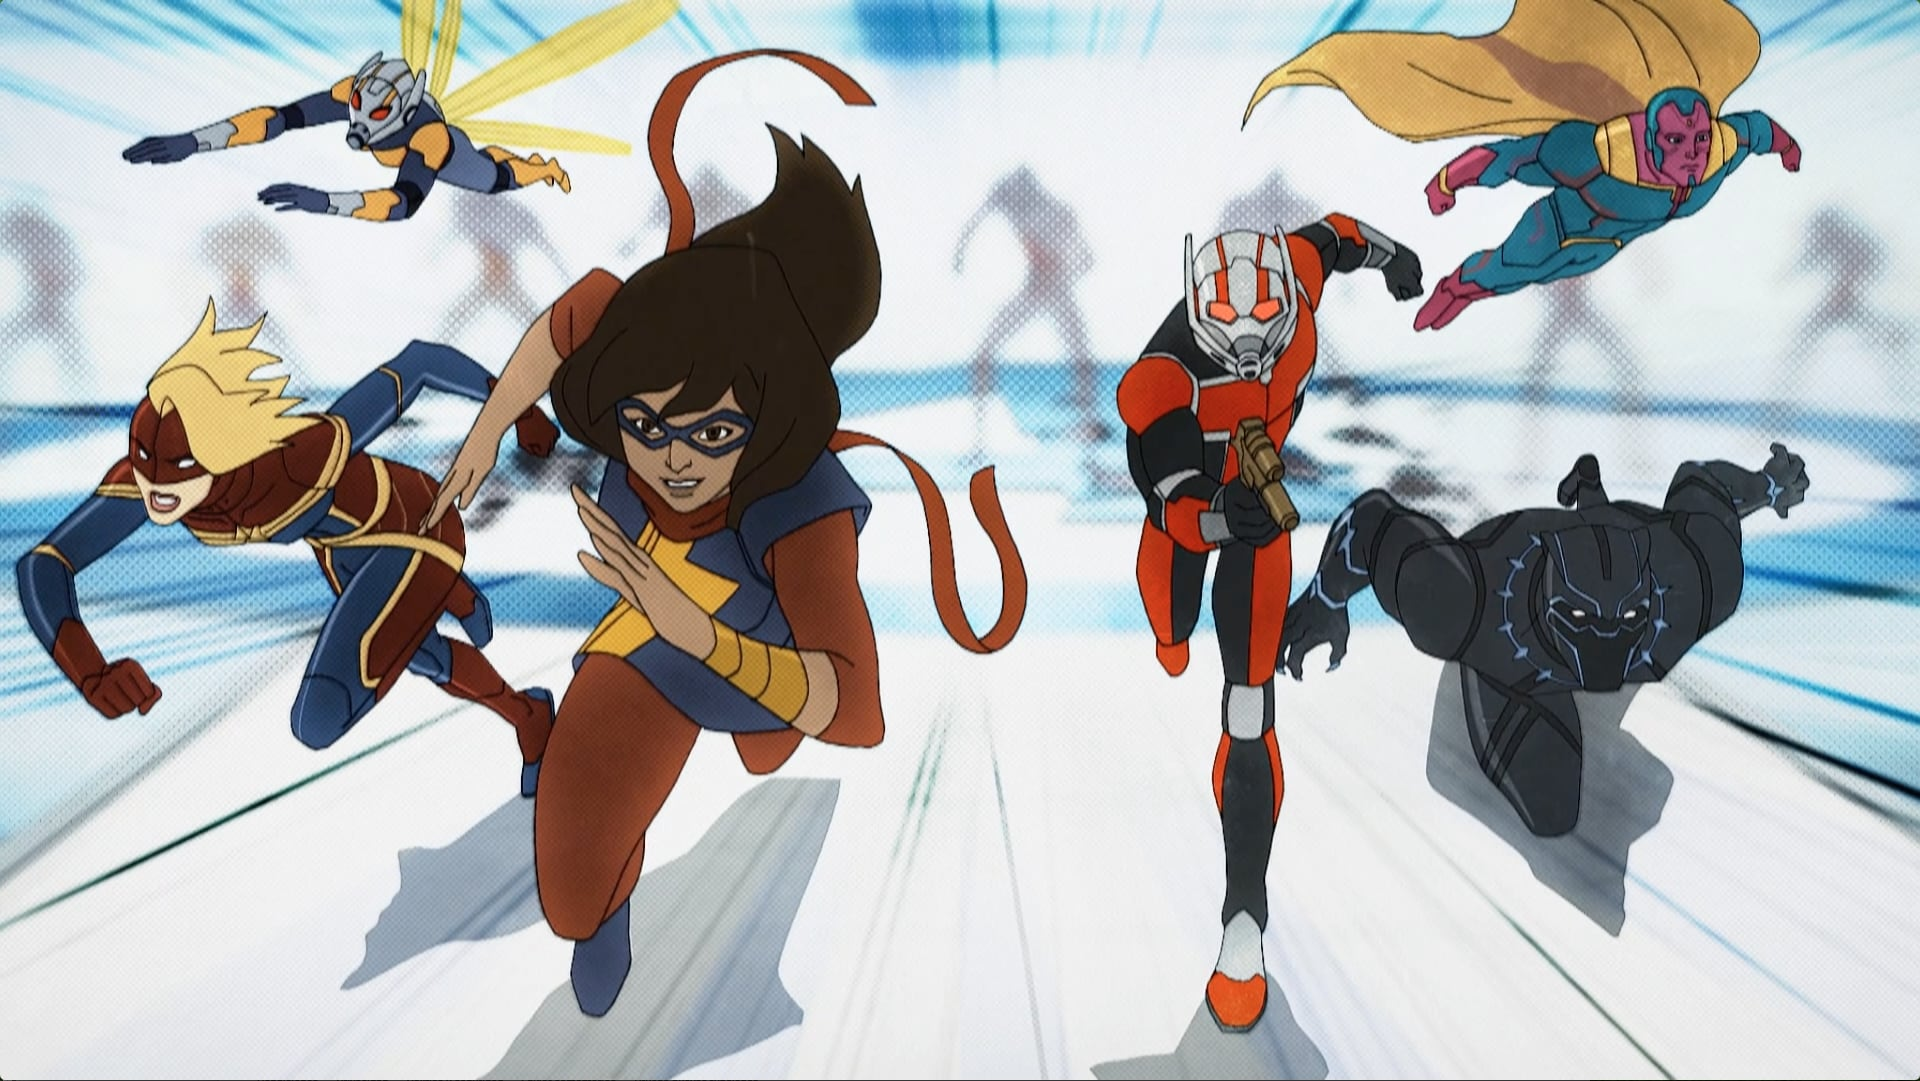 Ms. Marvel - Los Vengadores de Marvel: Guerras secretas